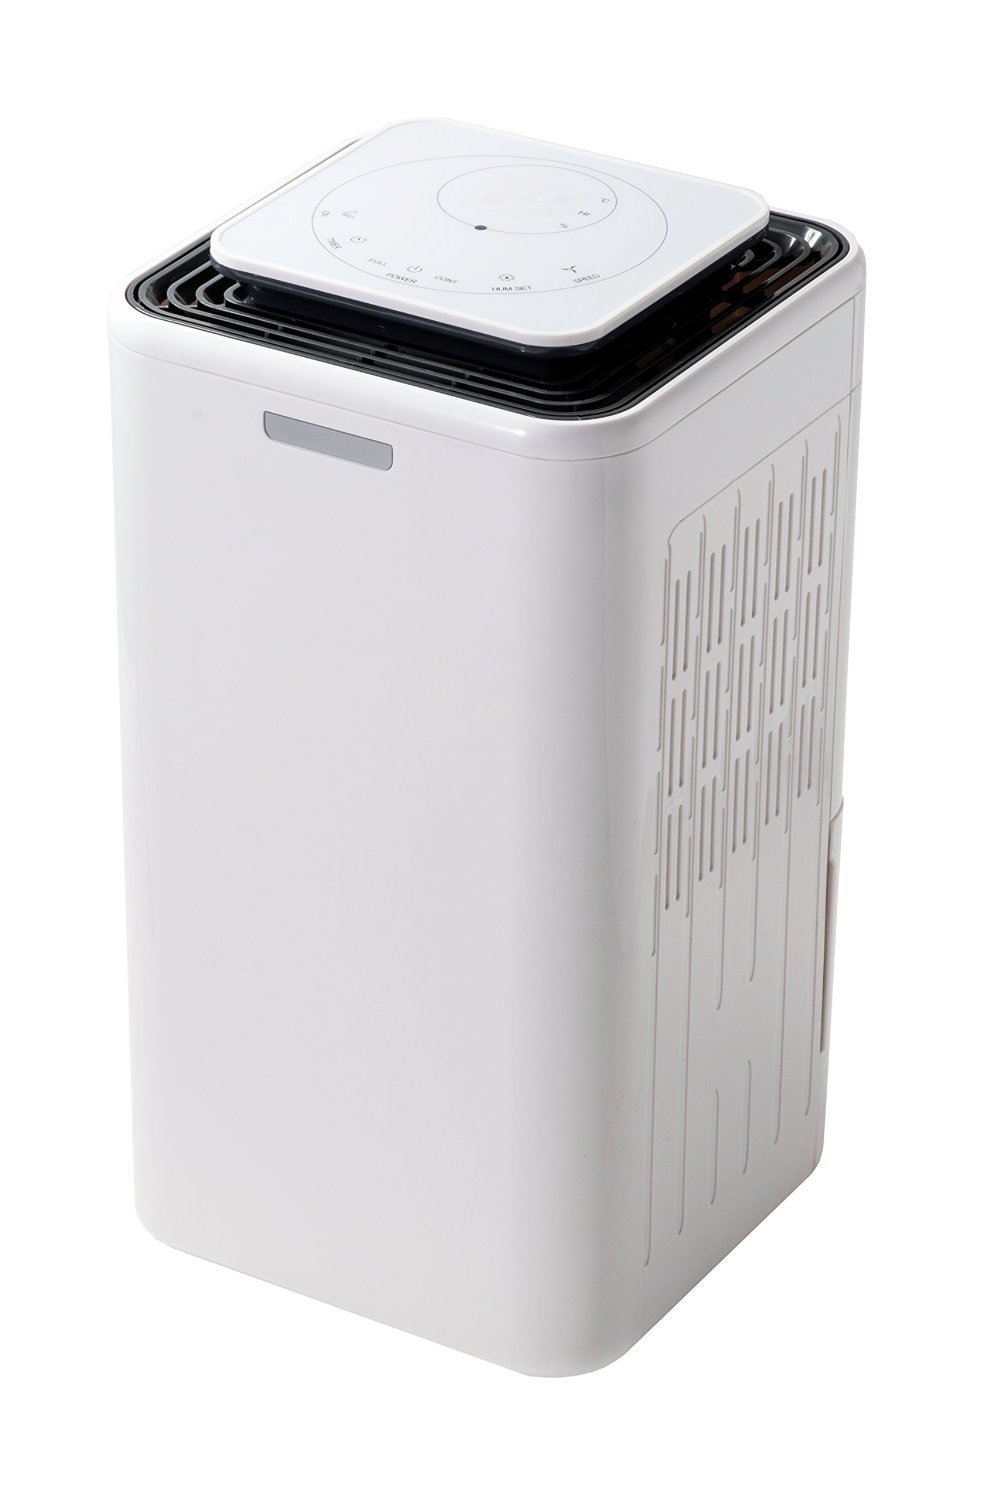 Eurgeen 30 Pint Smart Touch Screen Small Dehumidifier With Air Purify Big Water Tank for Home Kitchen Basements Garage Living room